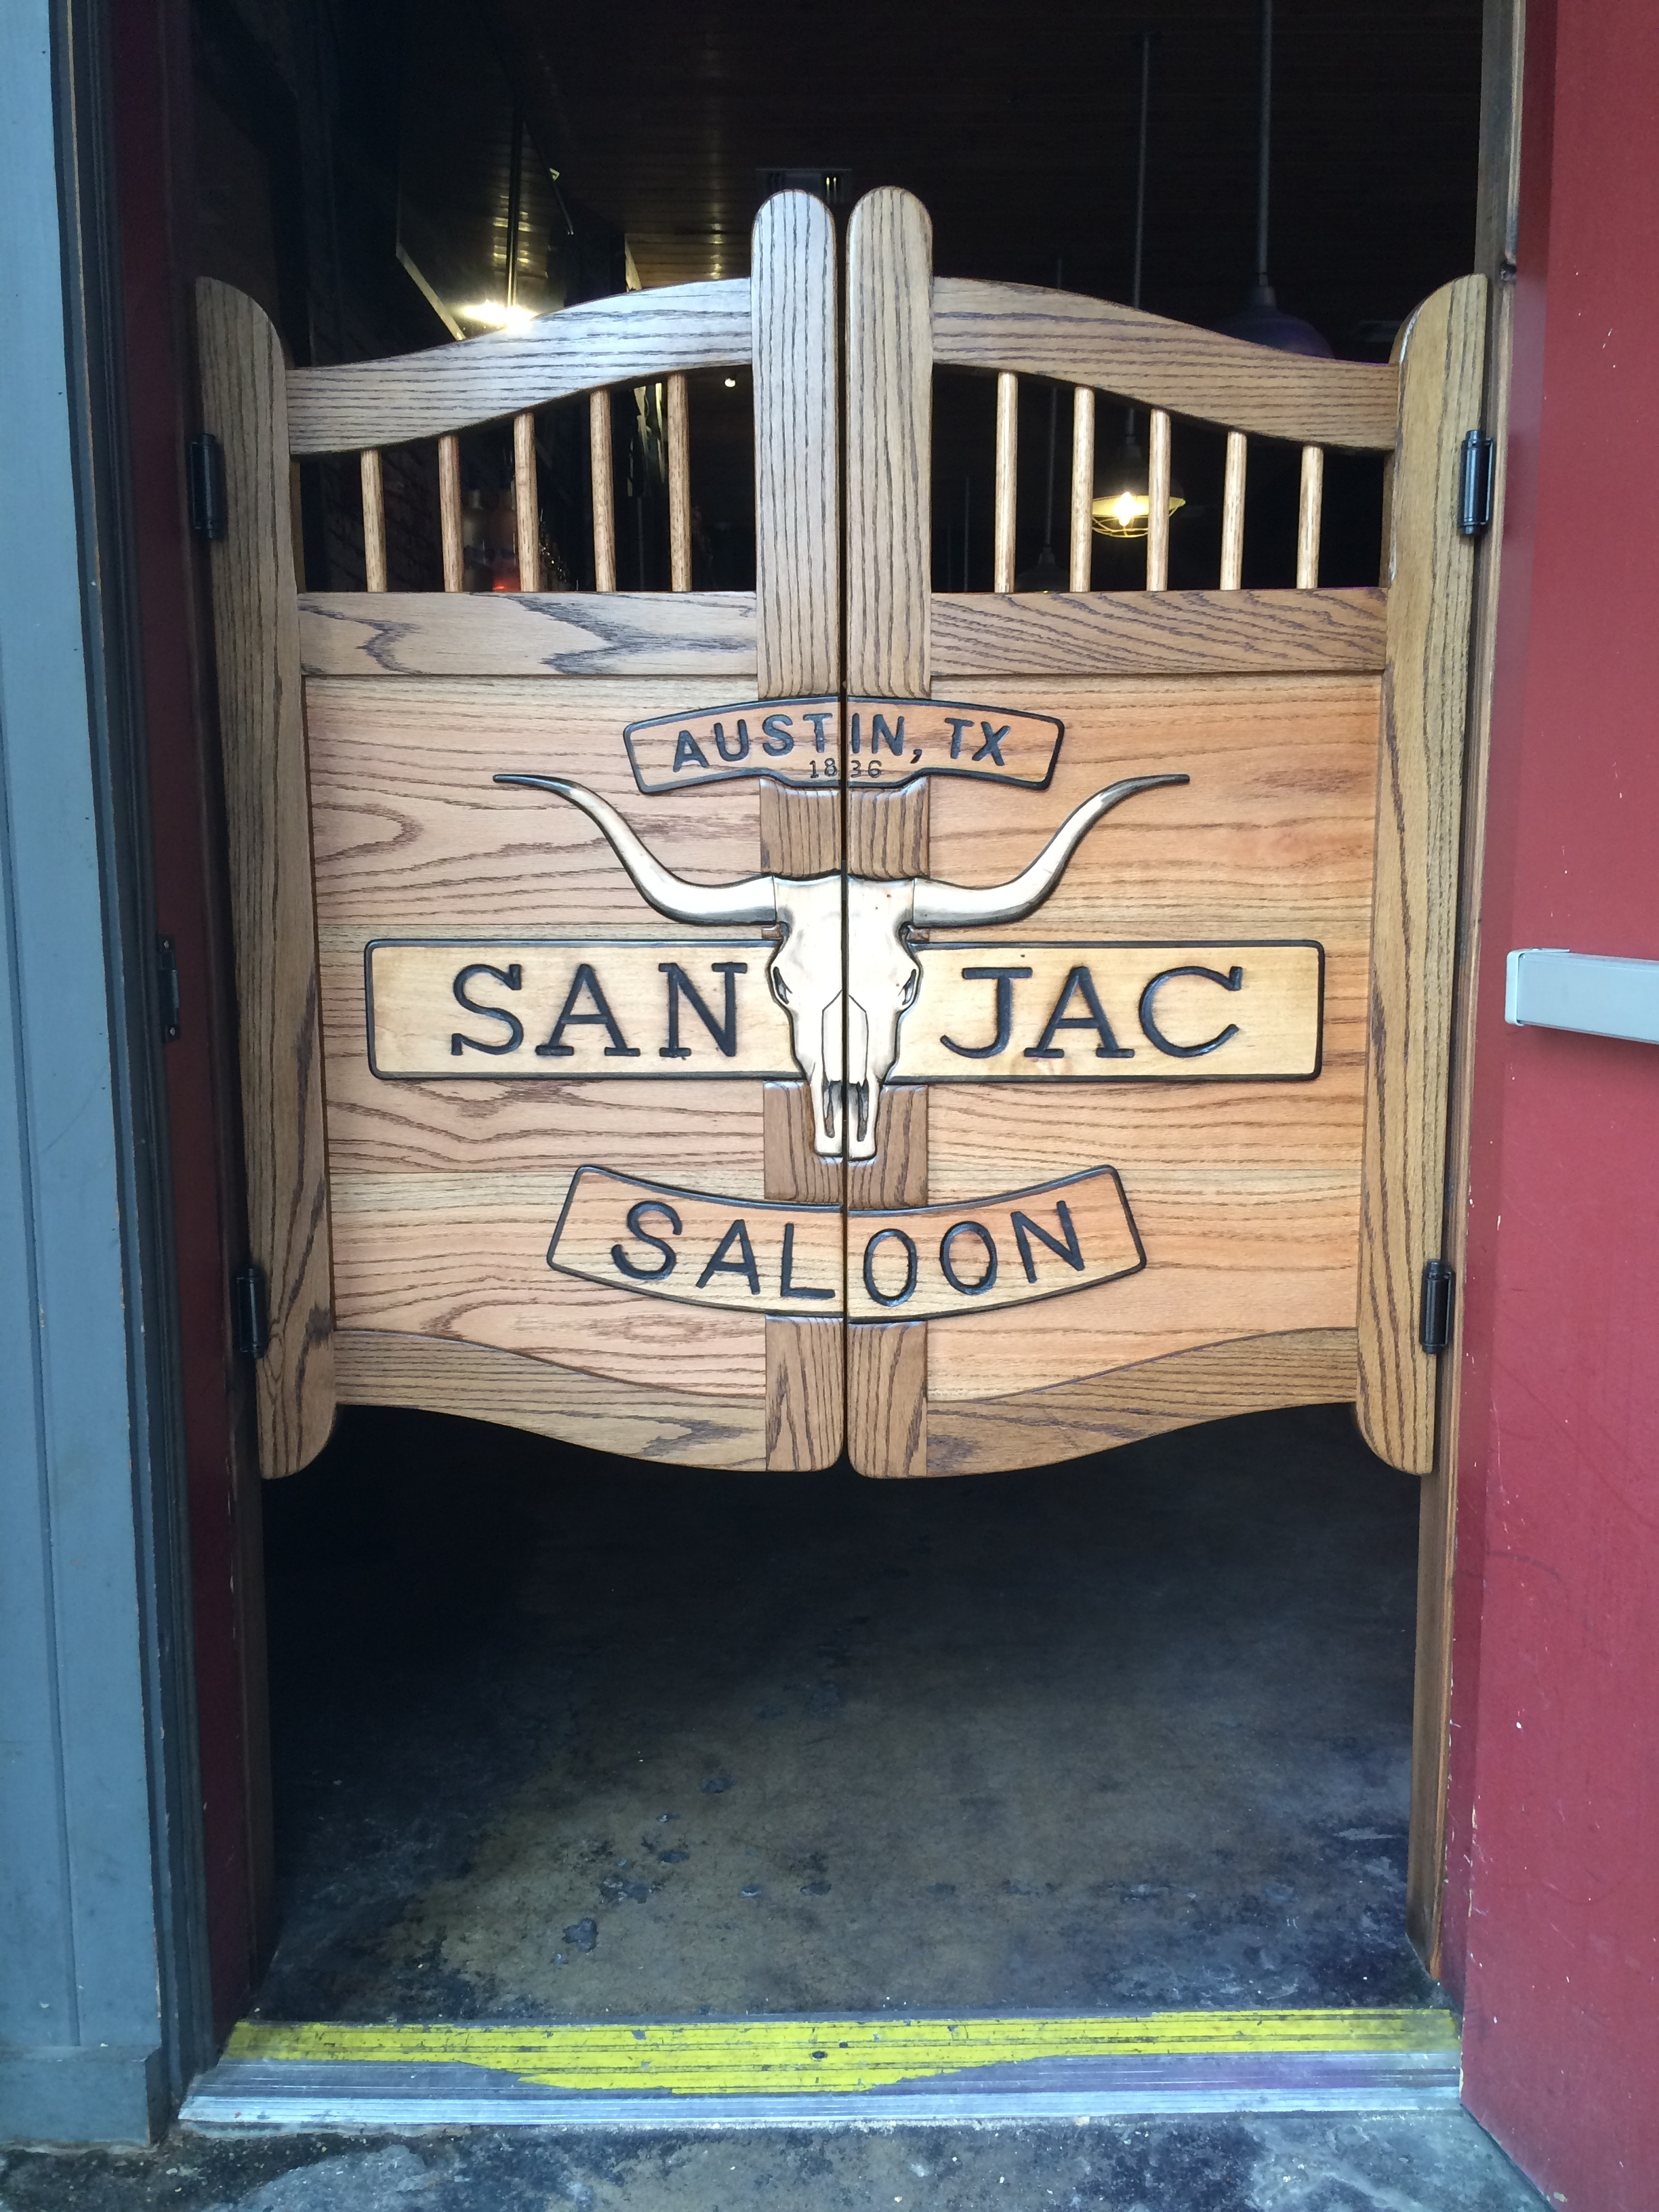 Western swinging saloon door with longhorn skull - San Jac Saloon, Austin, TX